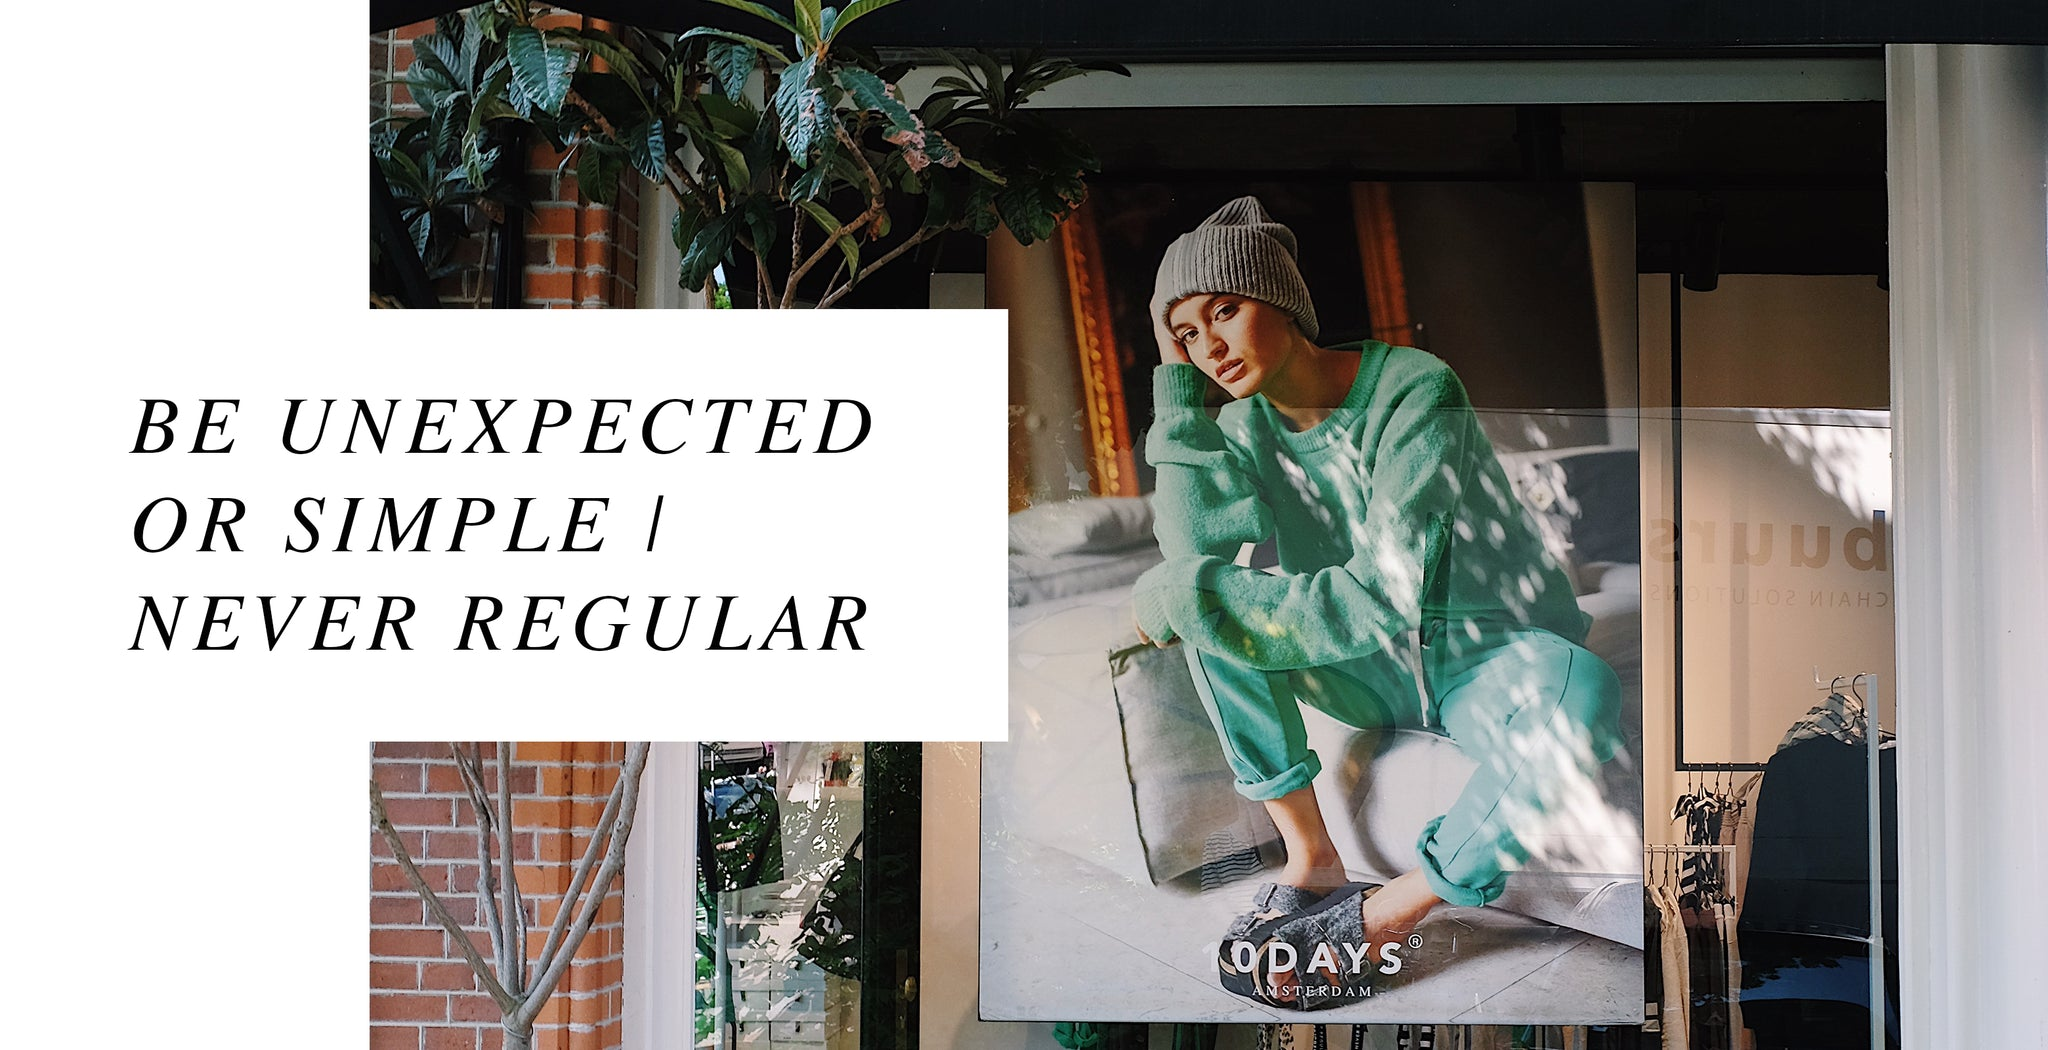 10DAYS - Be unexpected or simple | Never regular